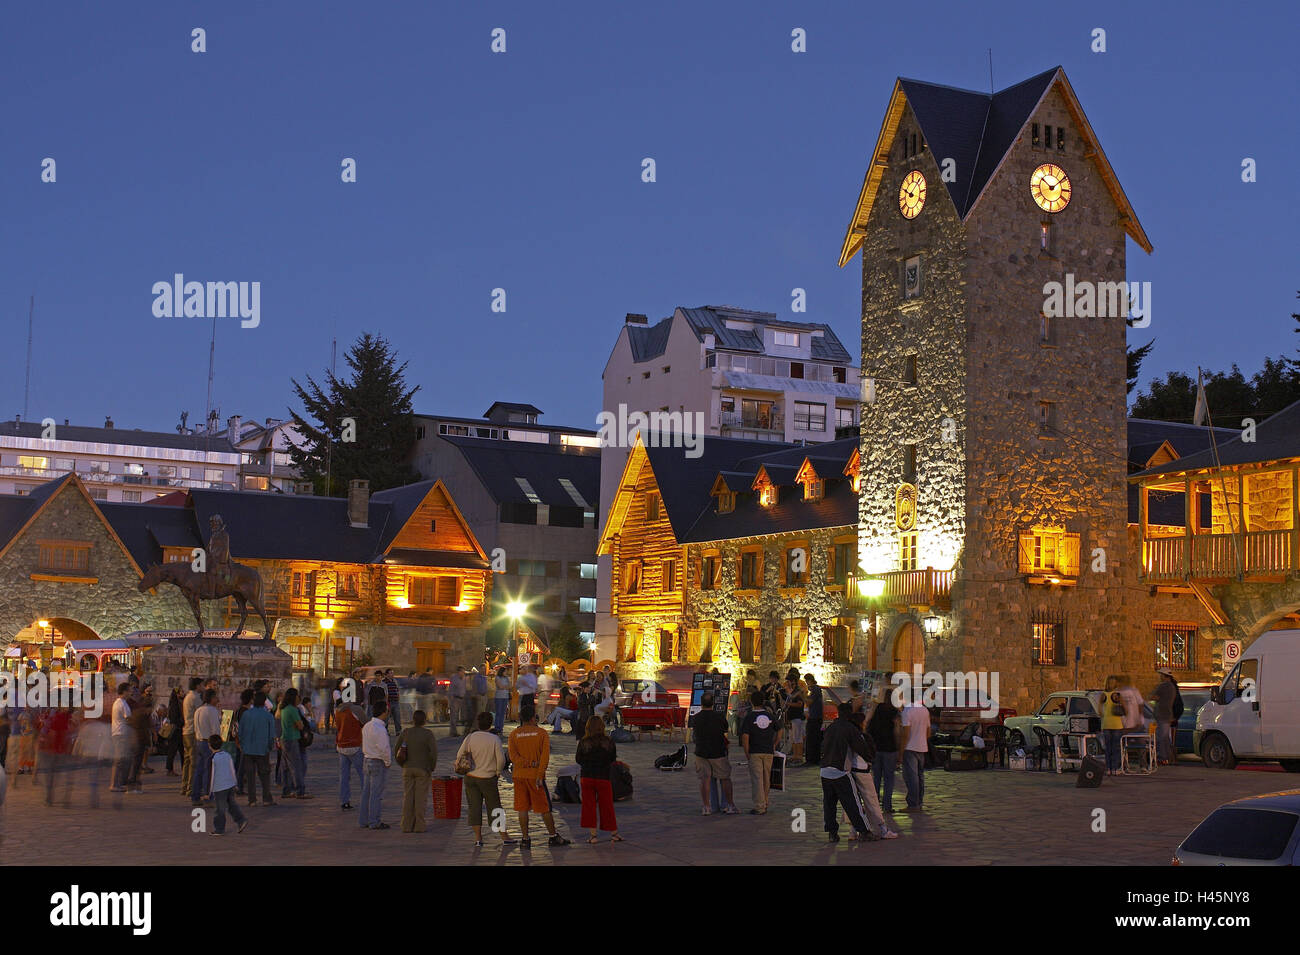 Argentina, Patagonia, San Carlos de Bariloche, town hall, tower, lighting, town hall square, pedestrians, evening, - Stock Image